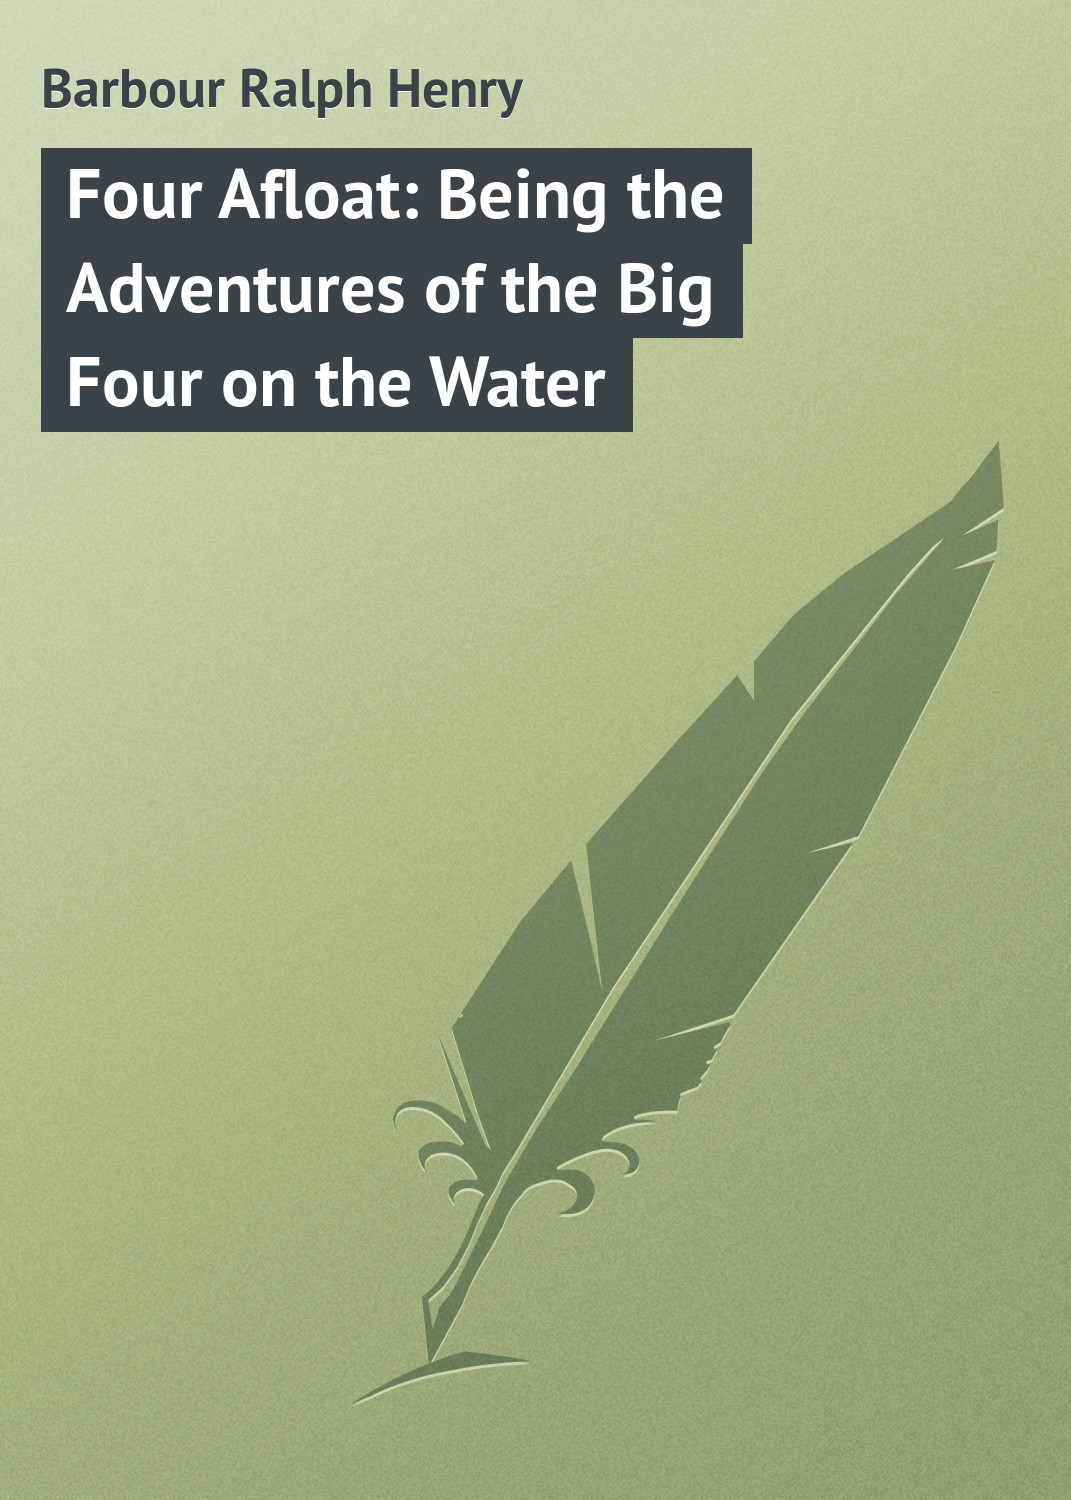 Barbour Ralph Henry Four Afloat: Being the Adventures of the Big Four on the Water the four